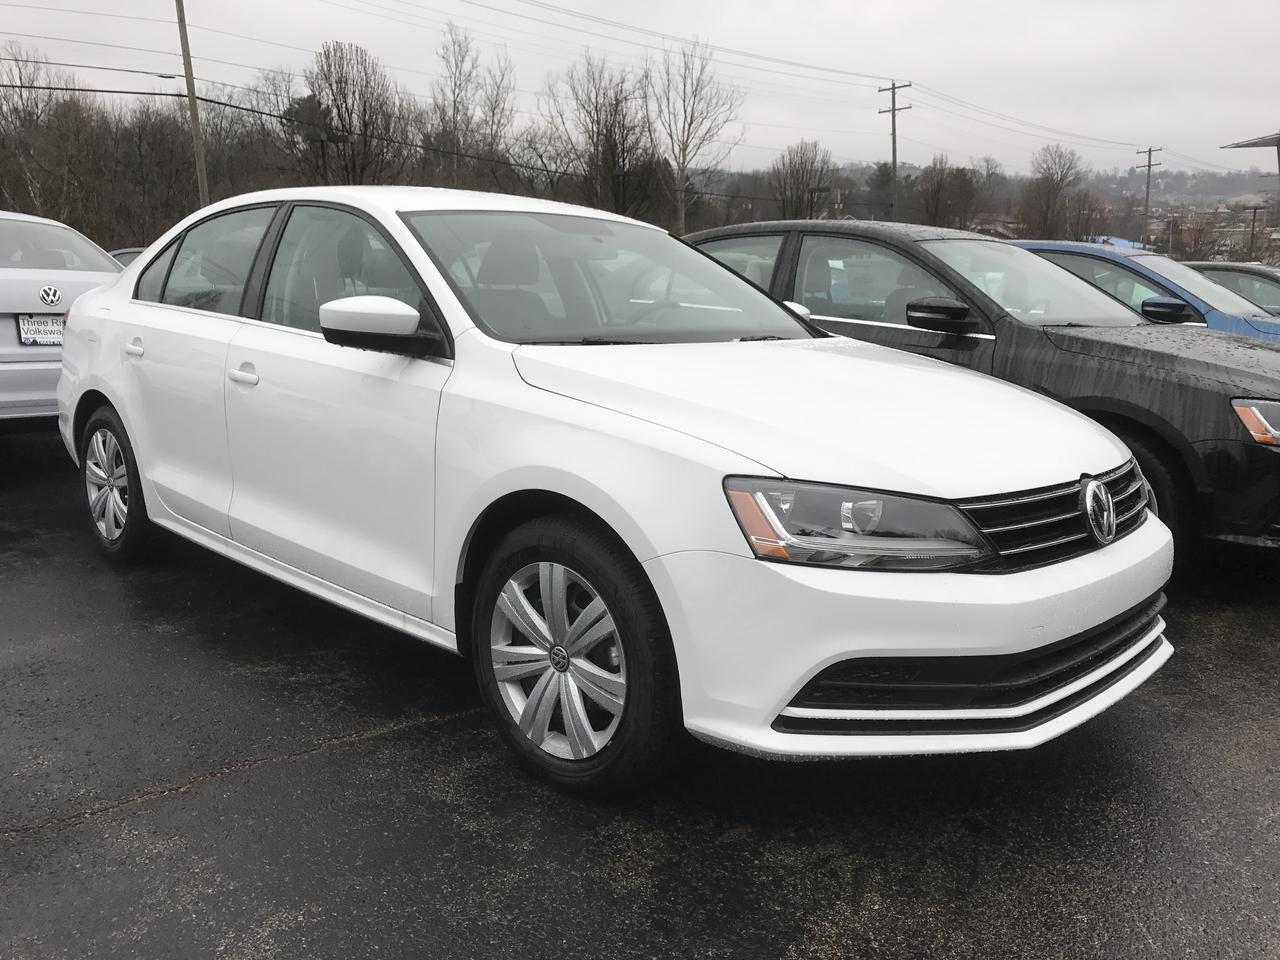 2017 volkswagen jetta 1 4t s mcmurray pa 17373642. Black Bedroom Furniture Sets. Home Design Ideas